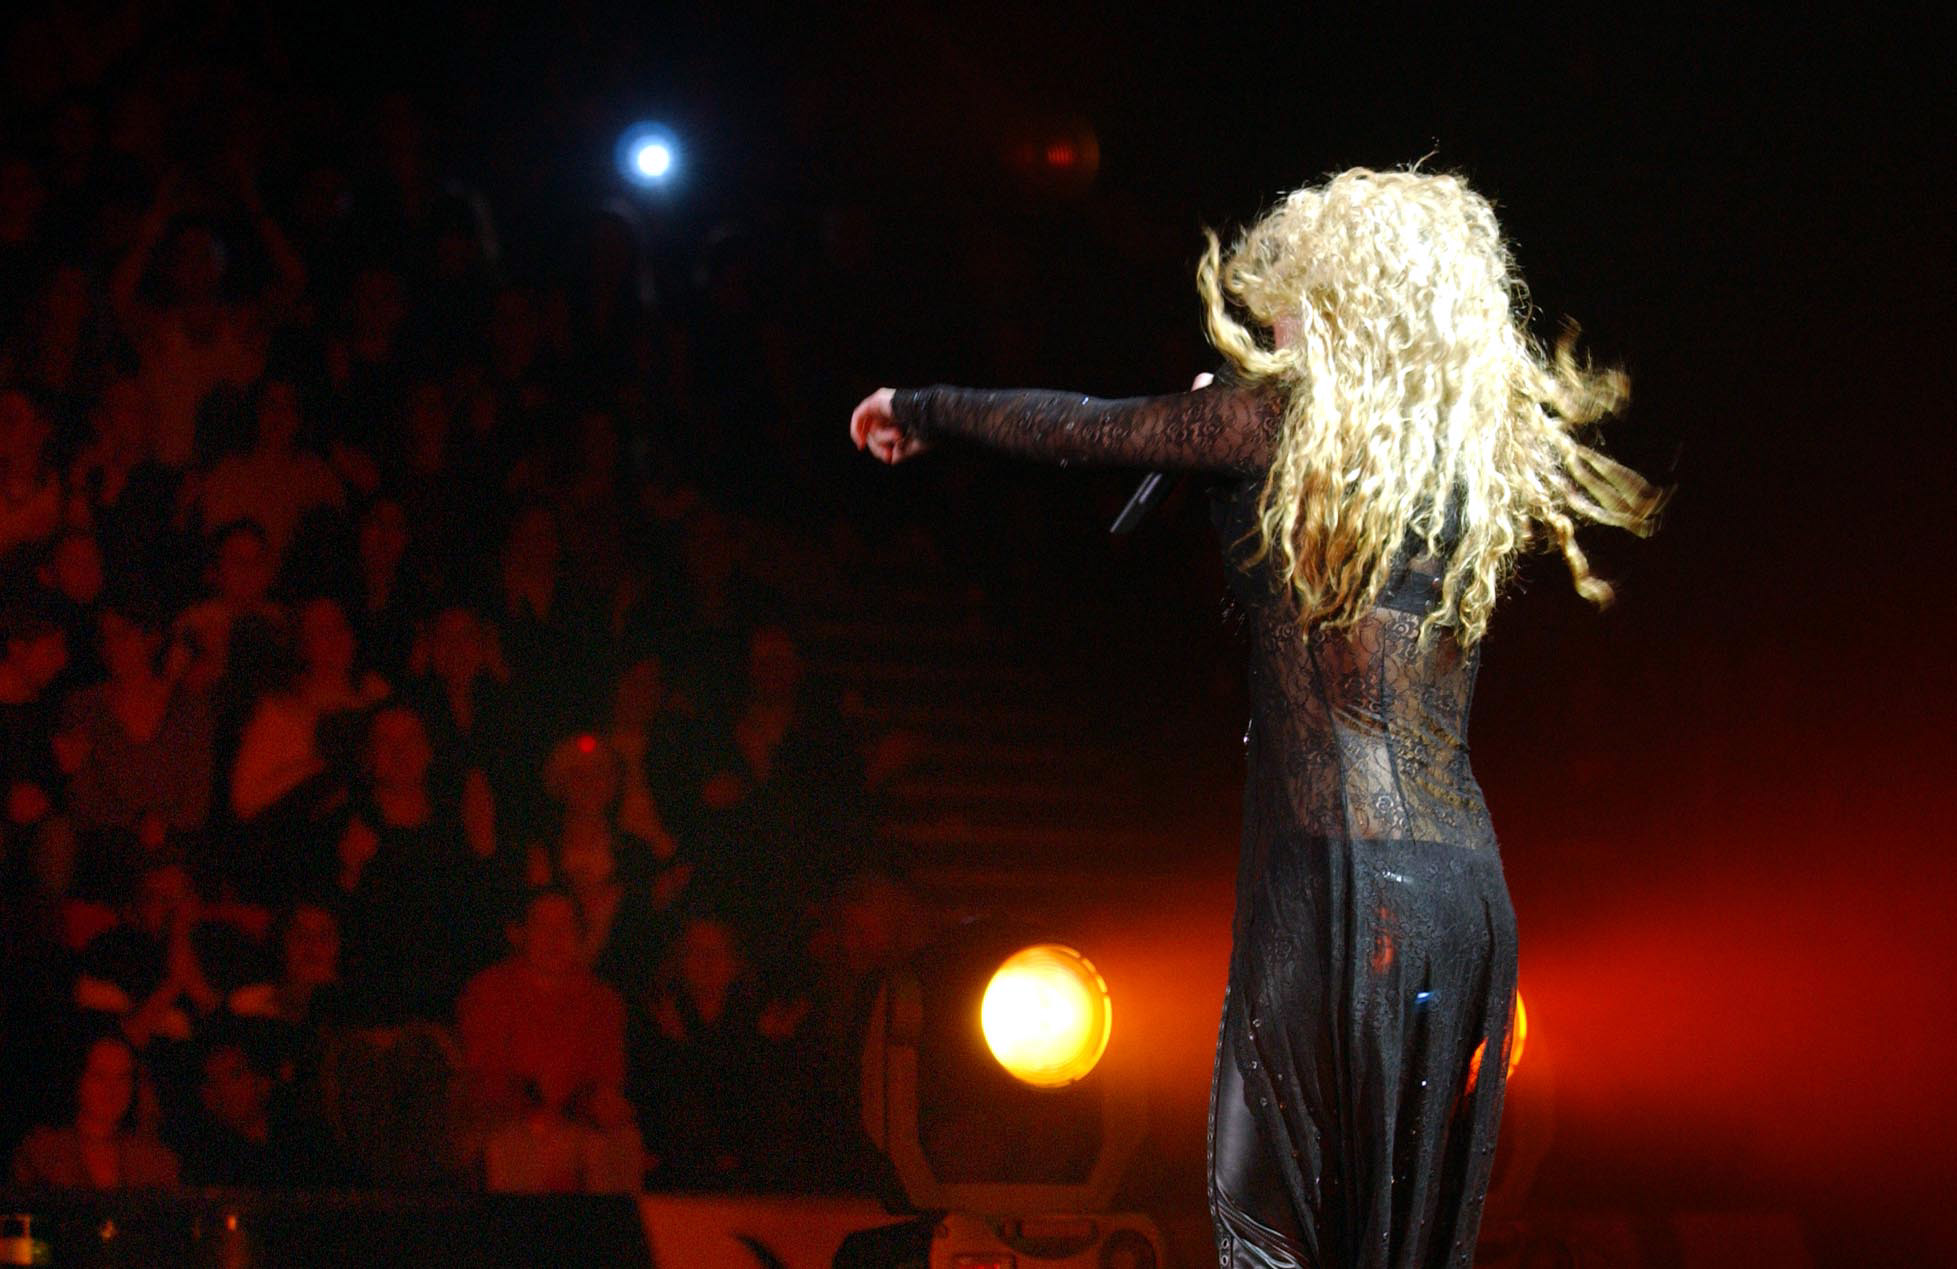 Shakira plays Wembley Arena